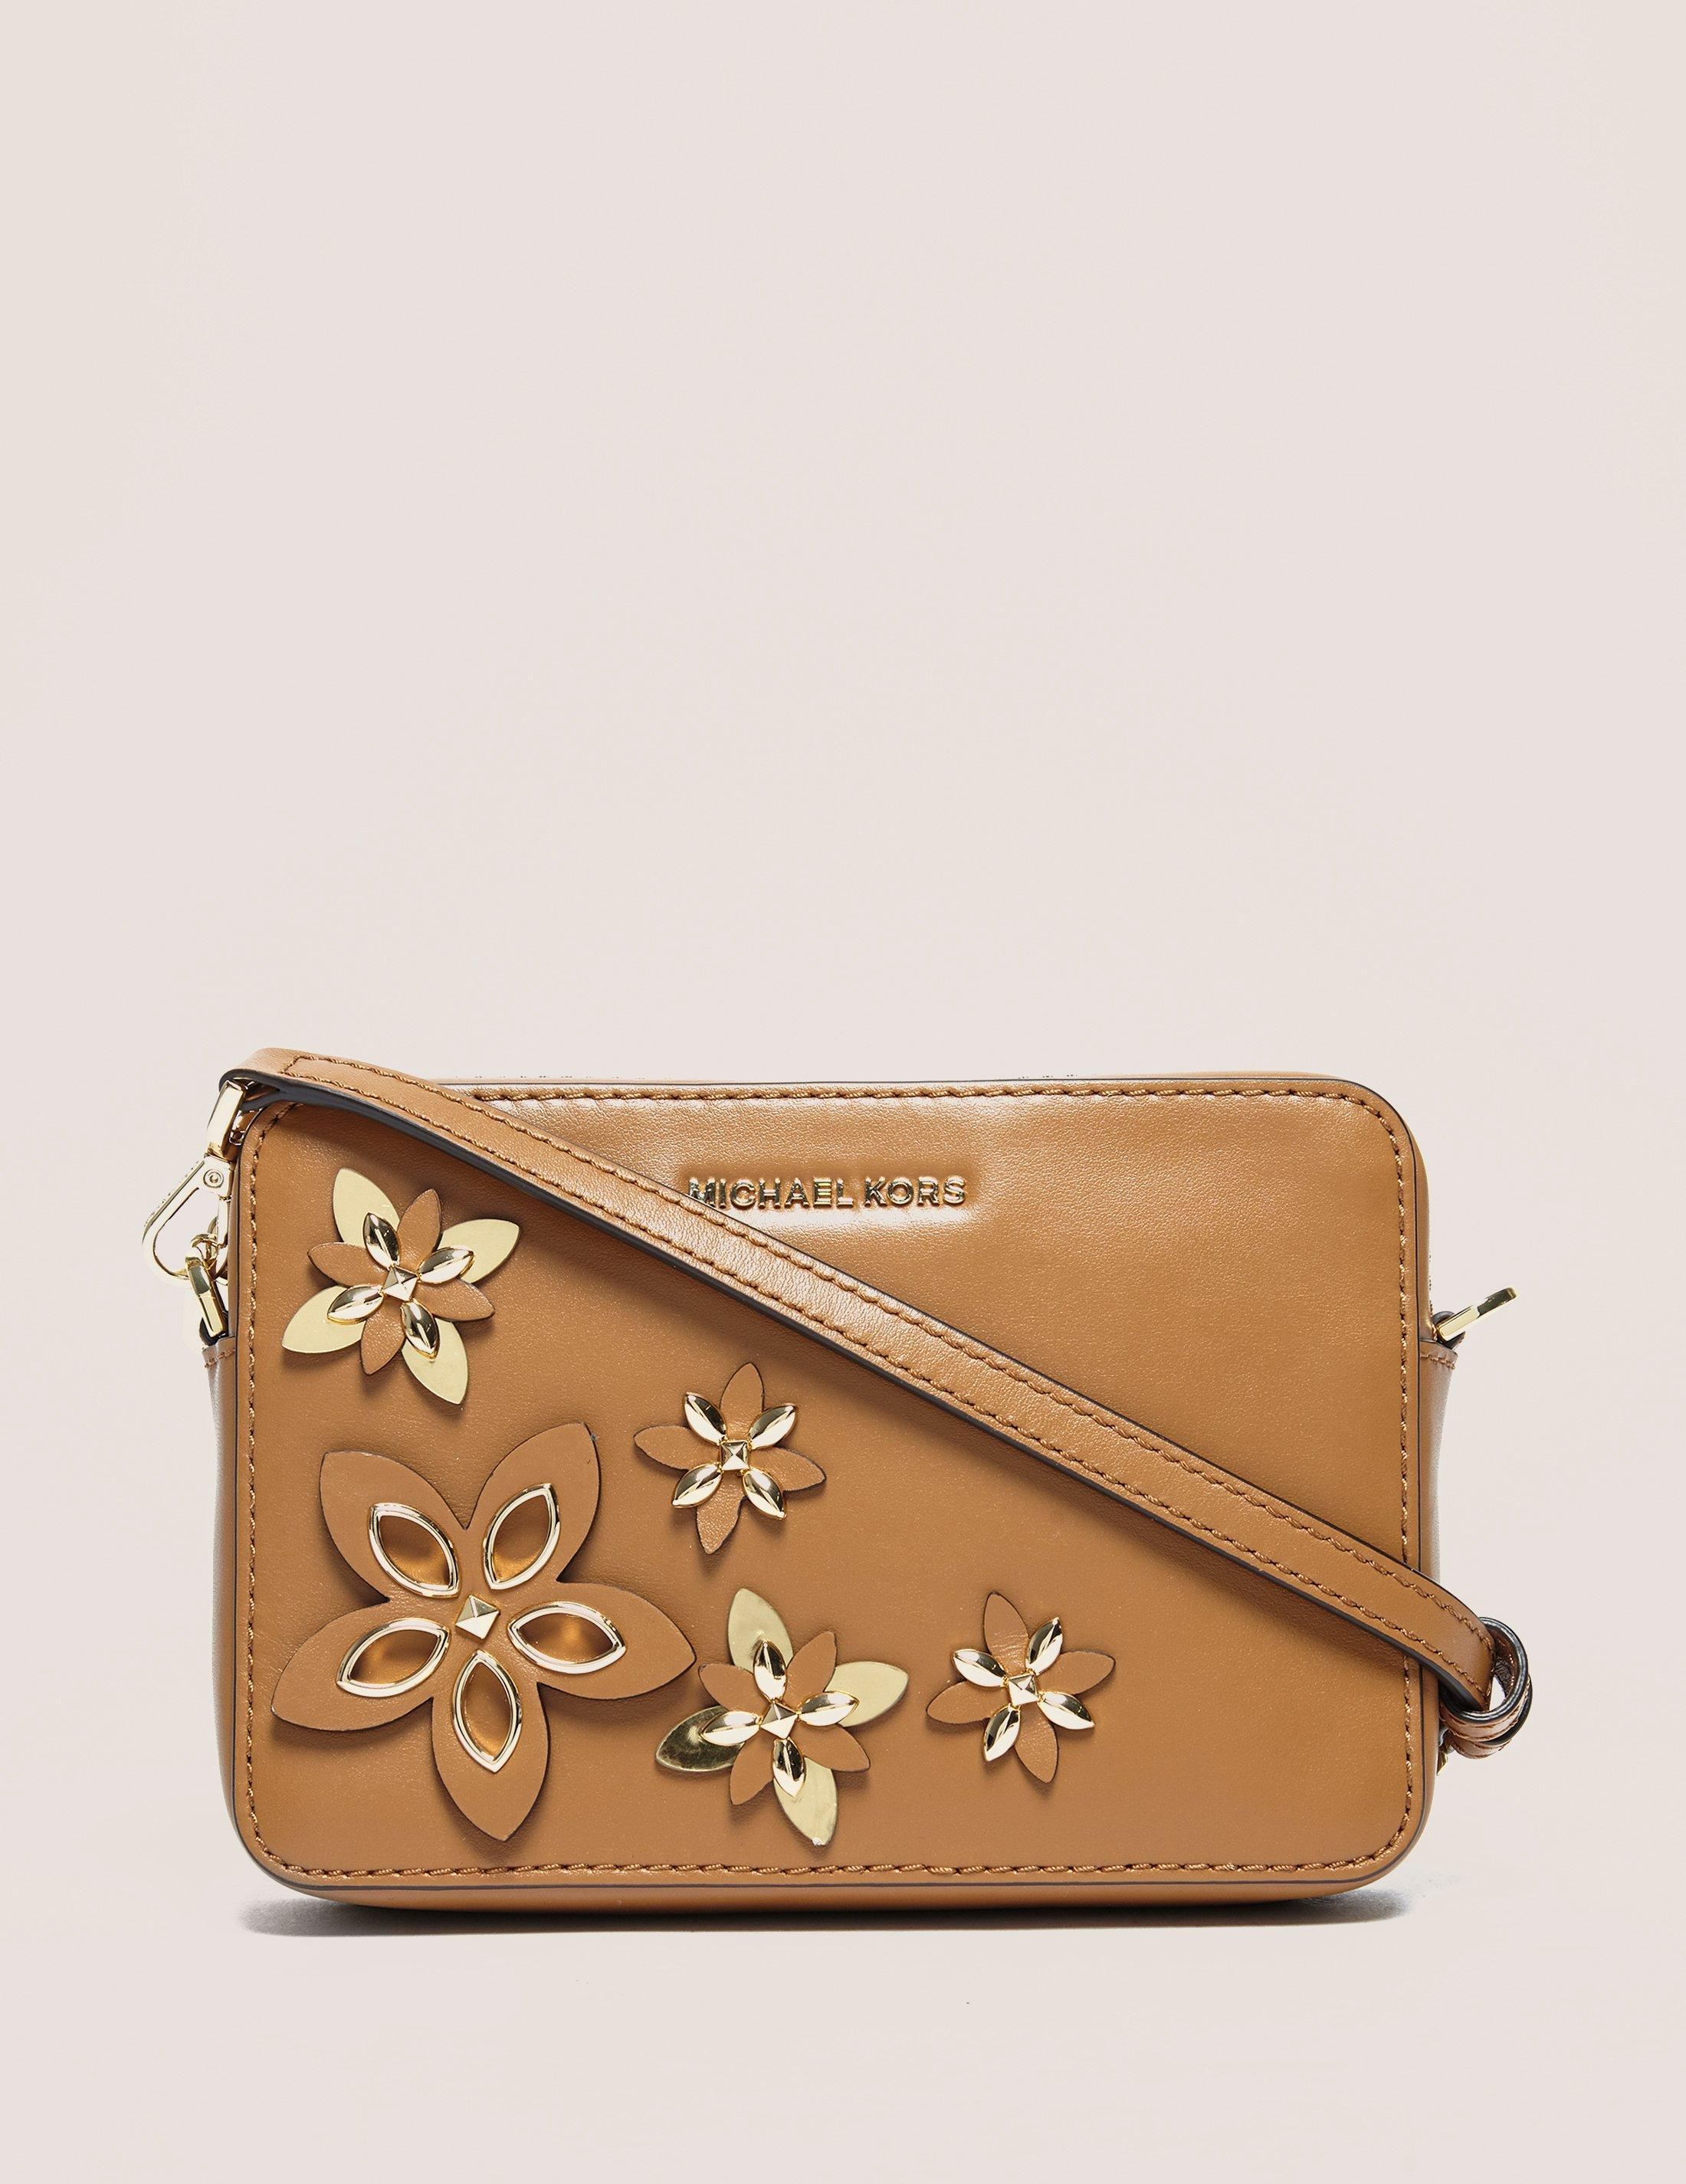 Michael Kors Flowers Medium Camera Bag In Brown - Lyst